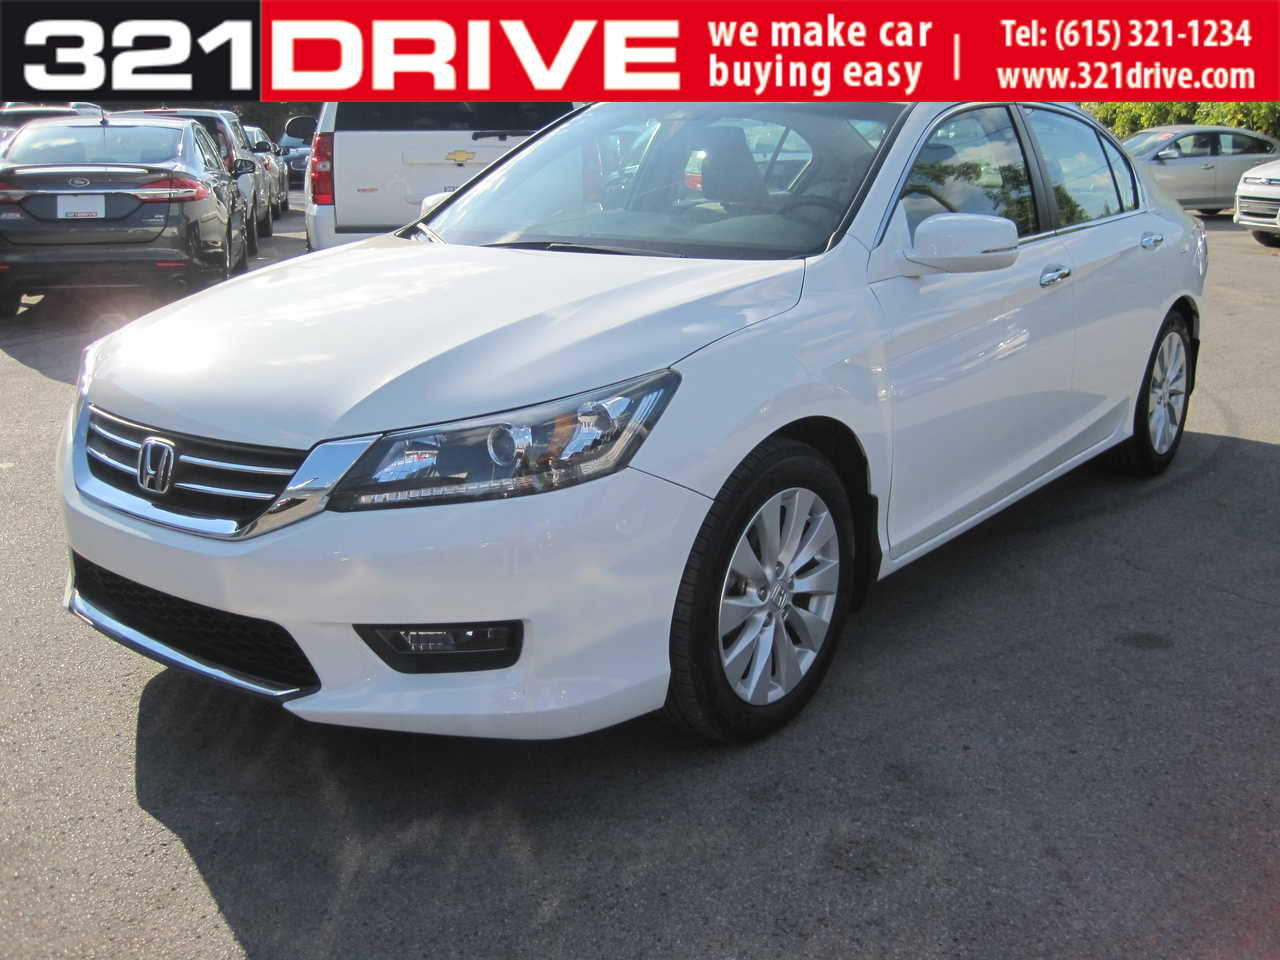 Used Honda Accord Inventory Cars Nashville Dealer The Best Here Pay Tn